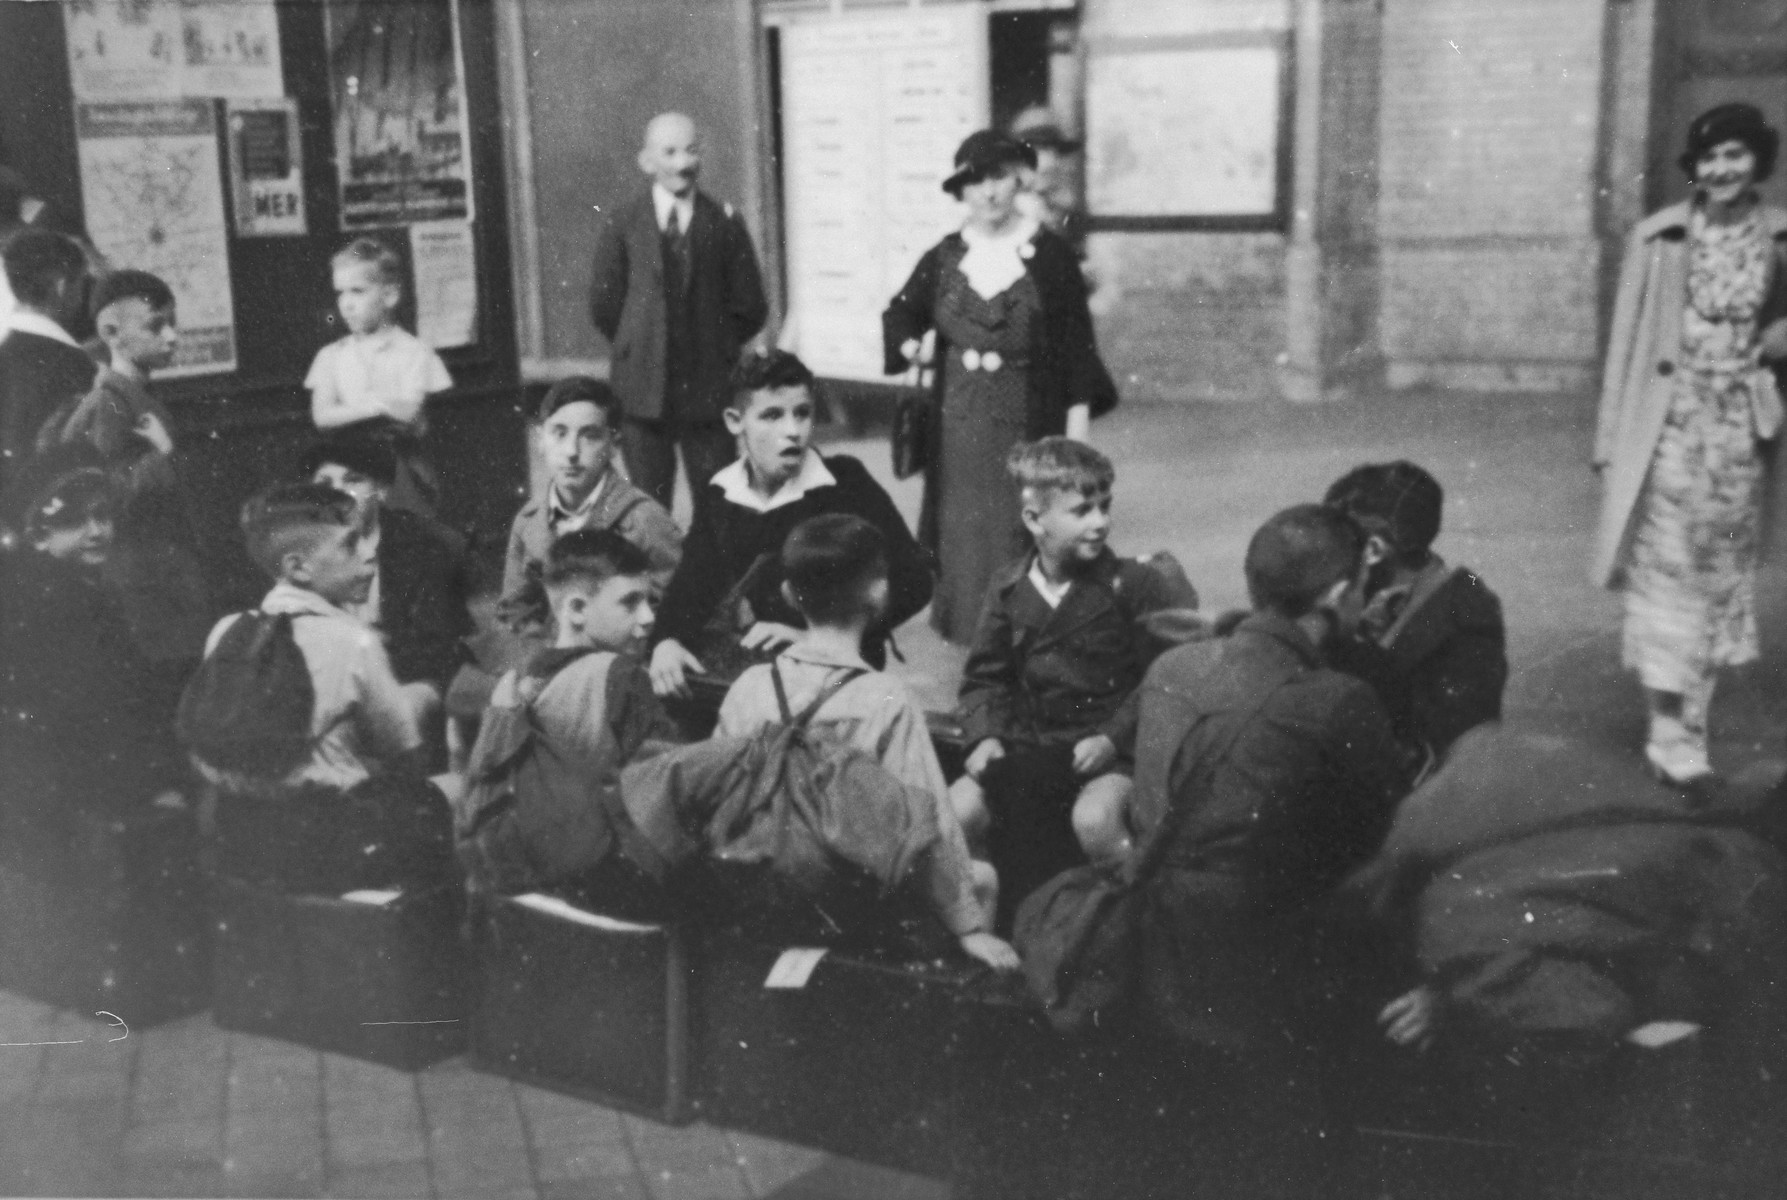 Jewish children from Germany who are on their way to a Kinderlager [children's recreational summer camp] in Horserod, Denmark, wait to board a train in the waiting room of the train station.   In 1935-36 Norbert Wollheim was involved in organizing groups of German Jewish youth to attend a summer camp in Denmark.